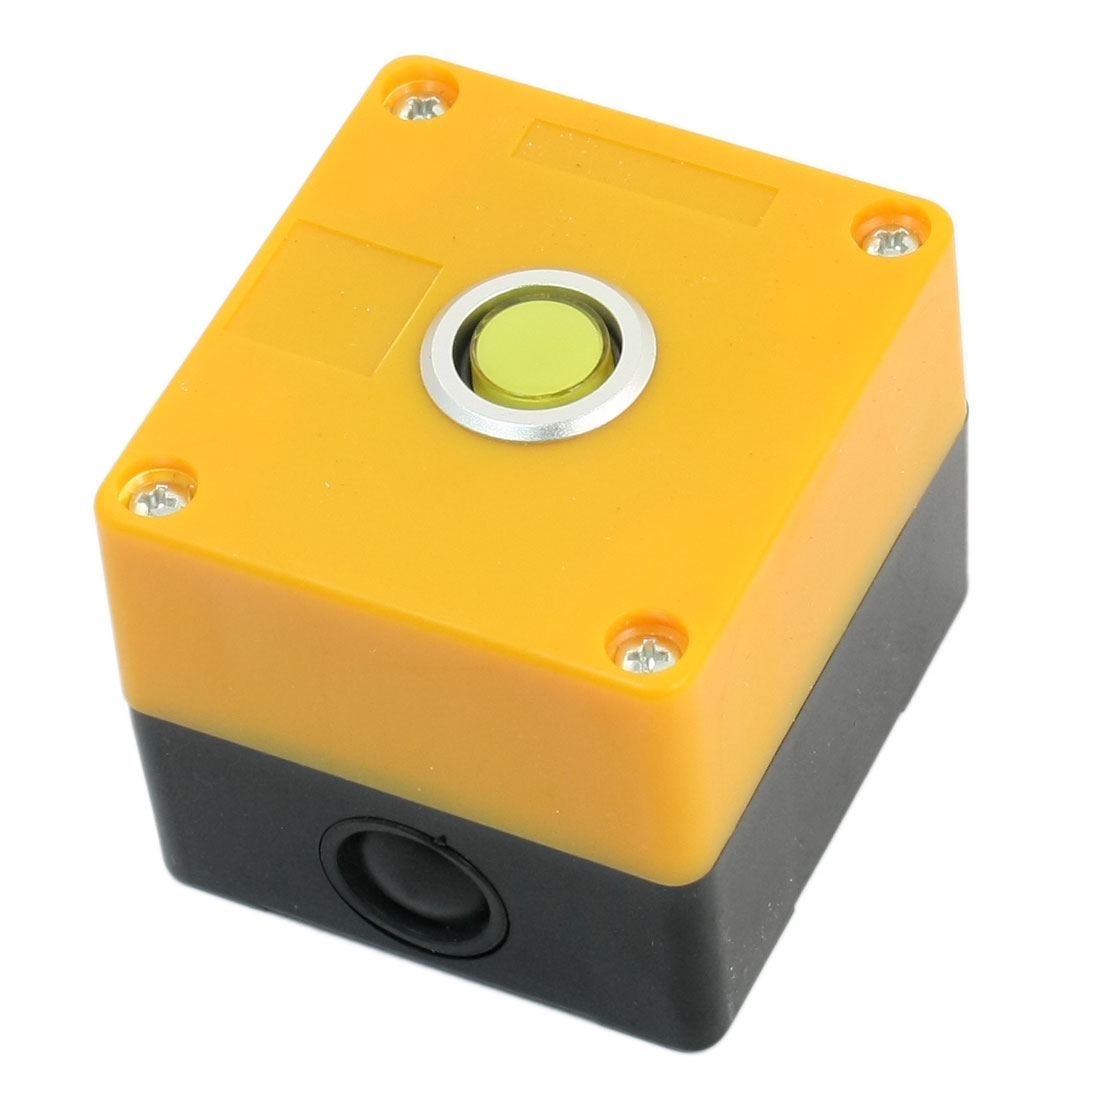 AC 220V 5A Yellow Light SPDT 1NO 1NC 5-Pin Momentary Action Round Button Pushbutton Station Switch Control Protector Guard